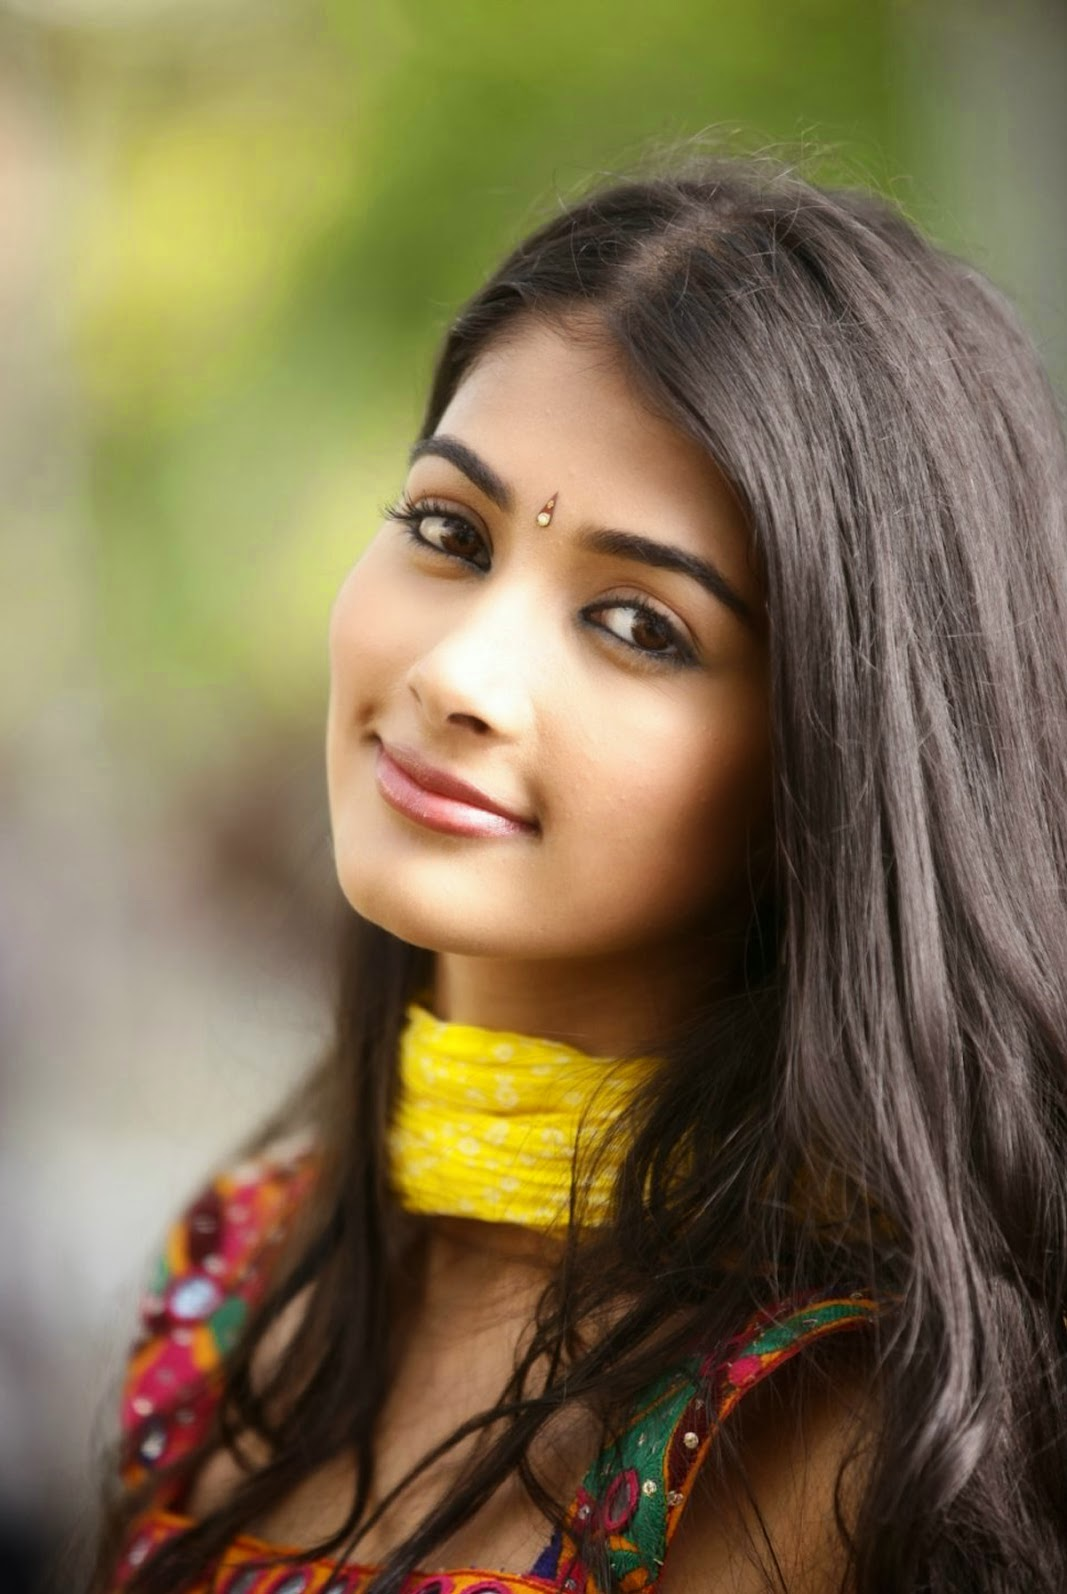 hd wallpapers: pooja hegde latest hd wallpapers